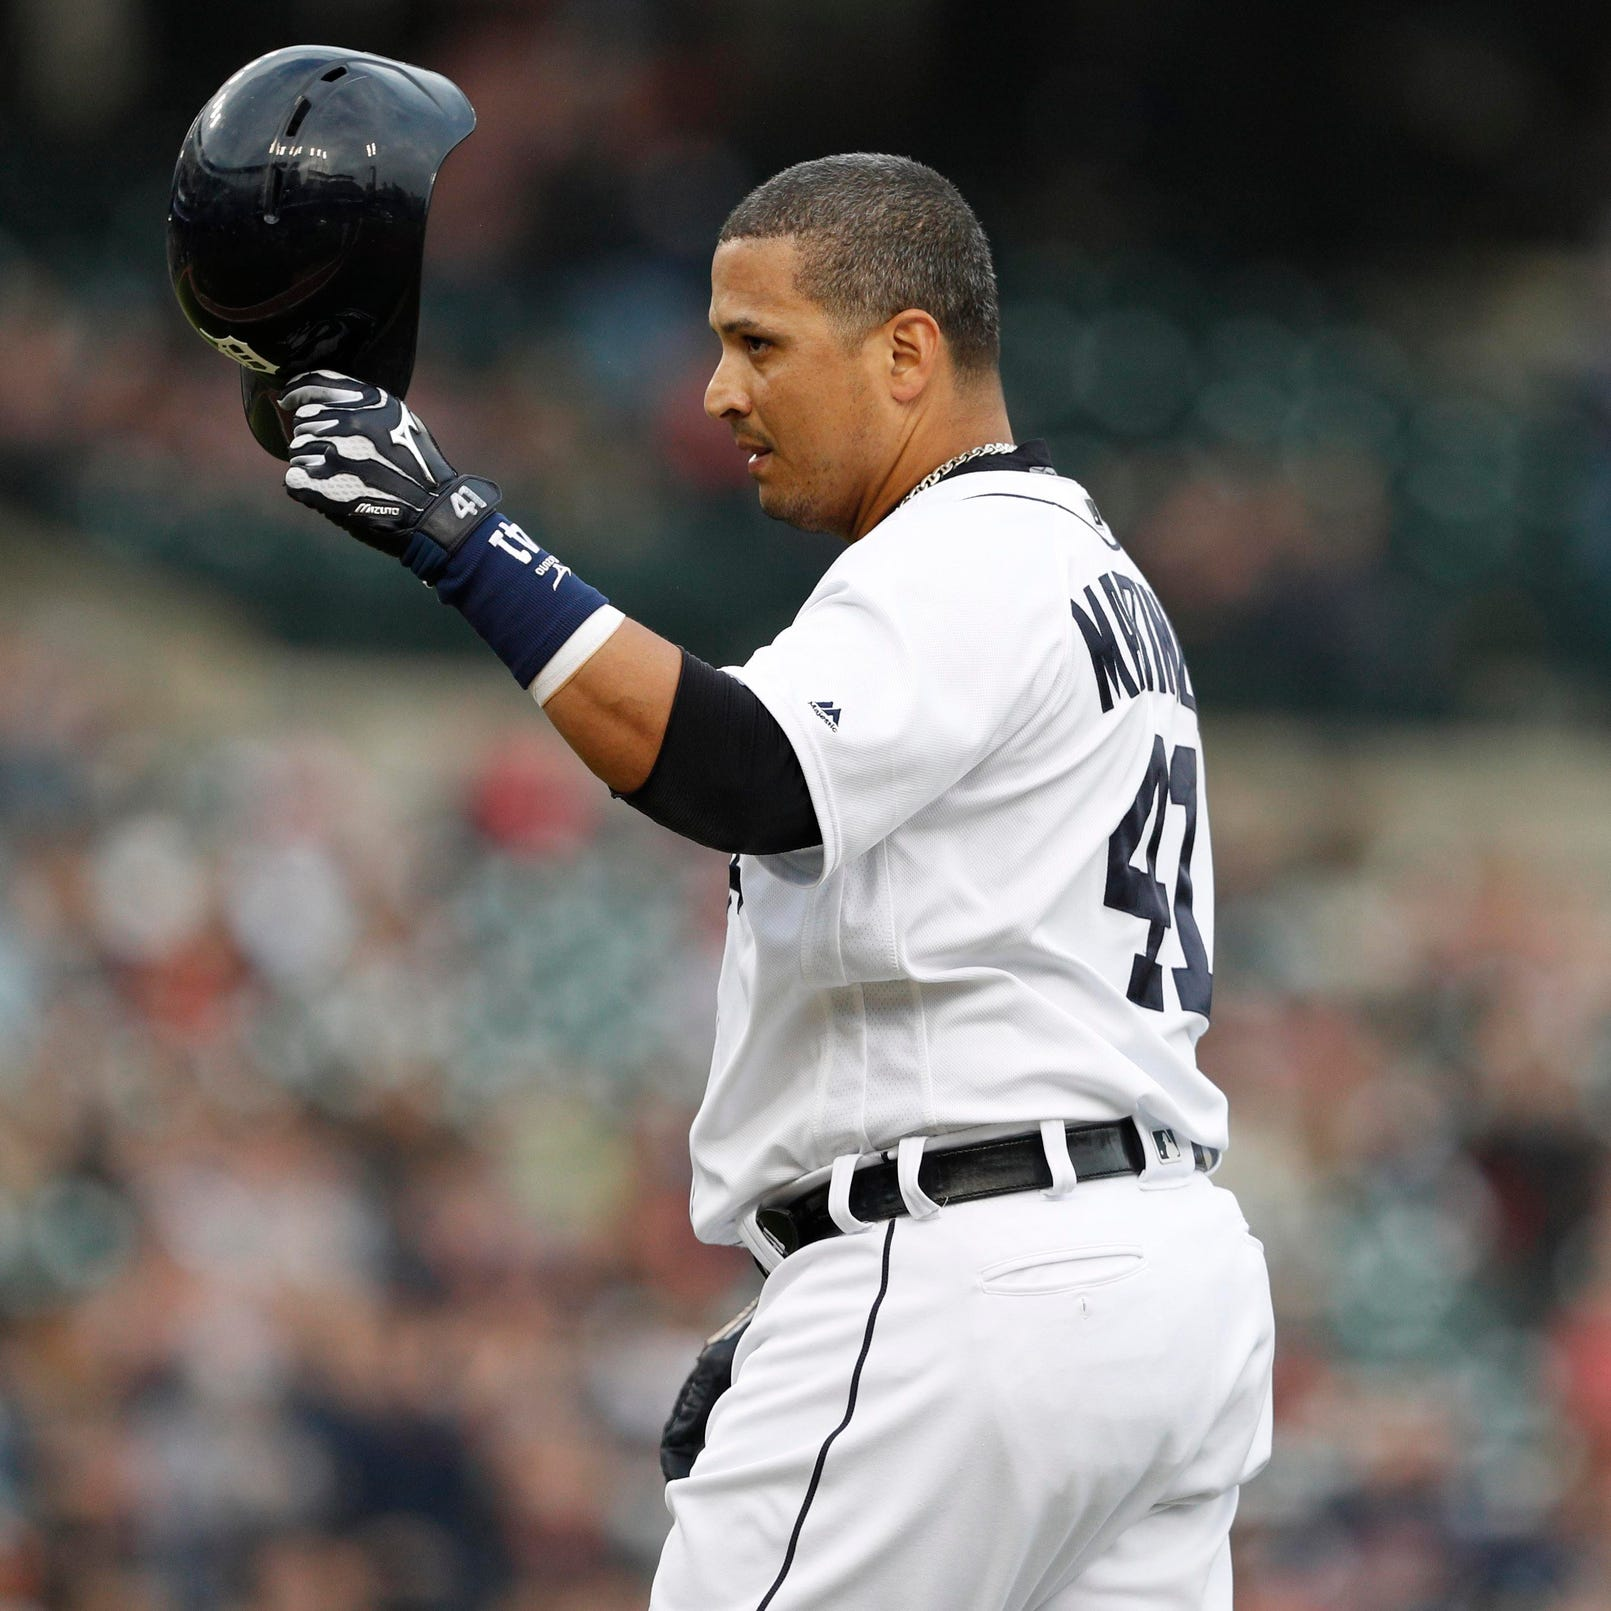 Inside Detroit Tigers' Victor Martinez's final game, start to finish